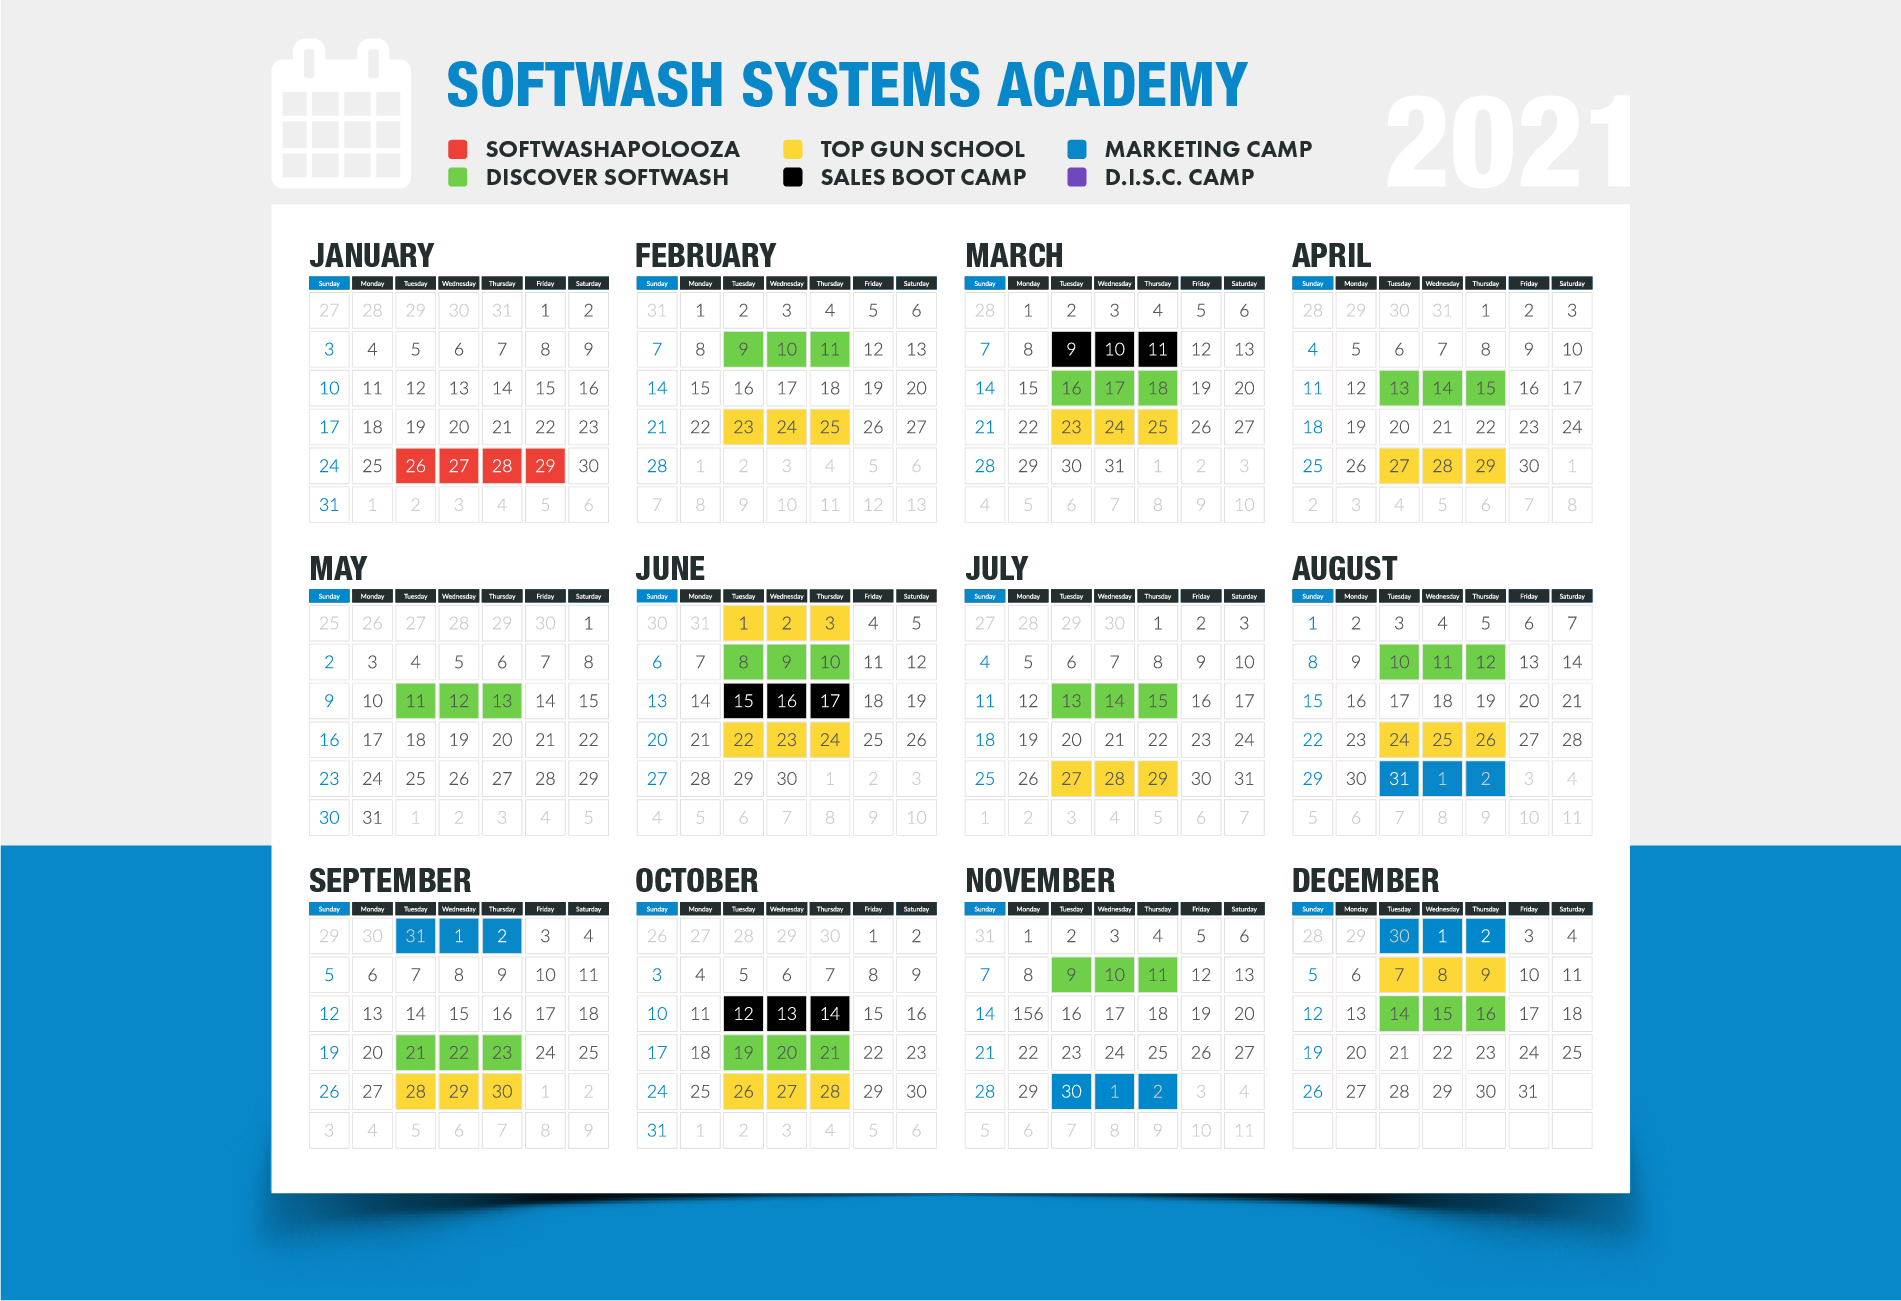 SoftWash Systems Academy